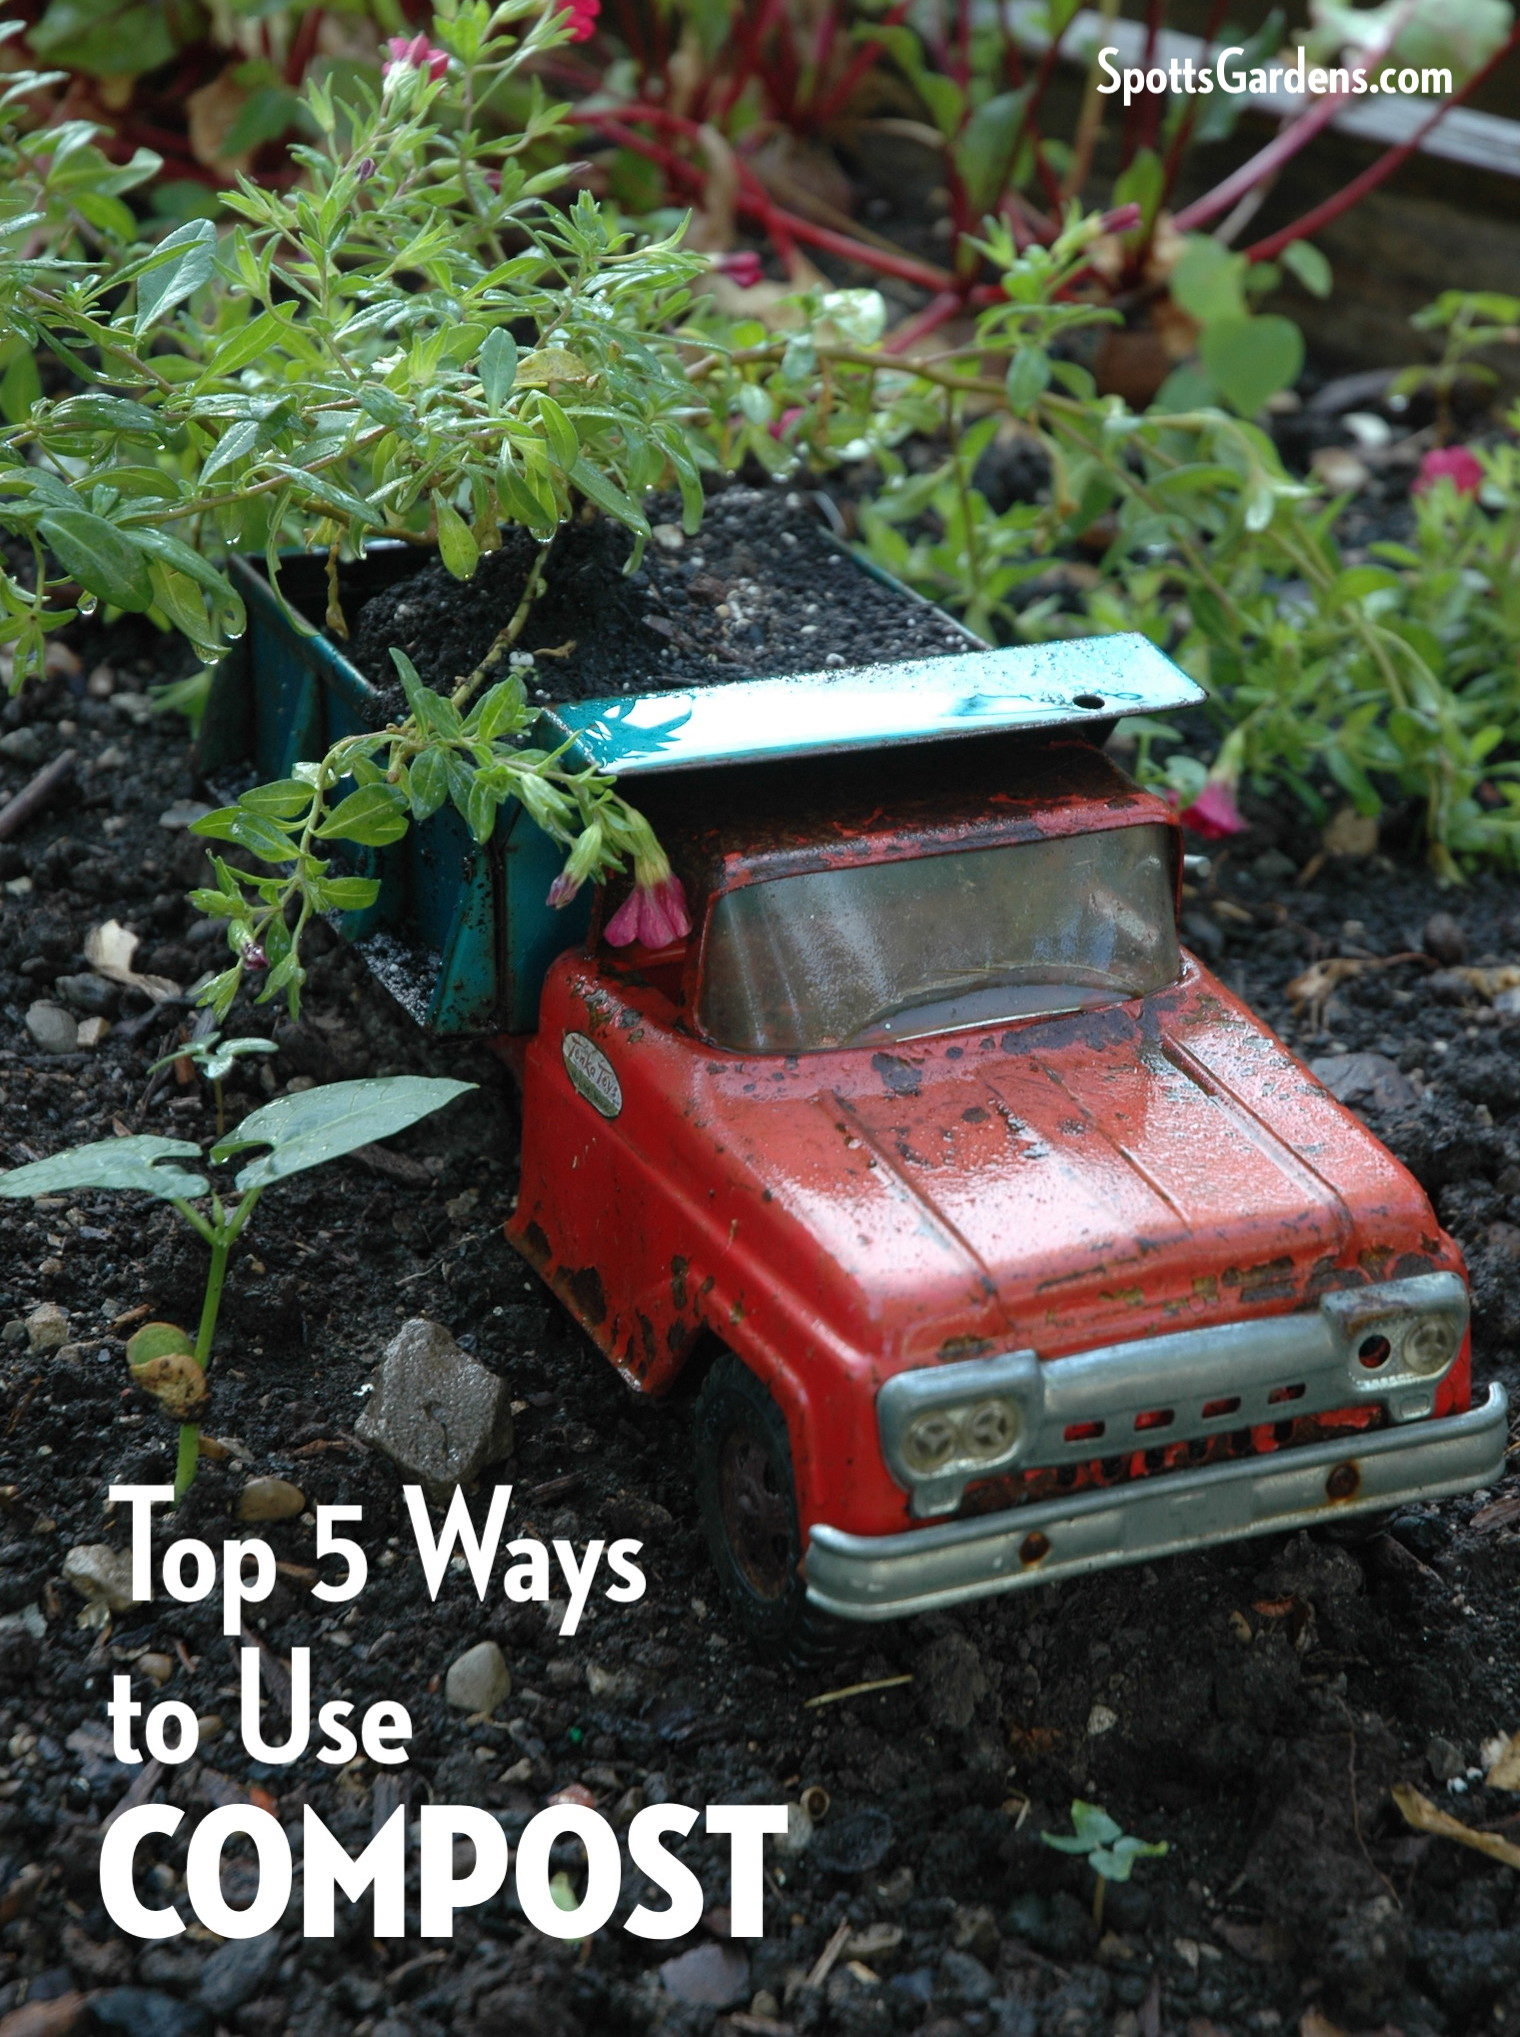 Top 5 Ways to Use Compost